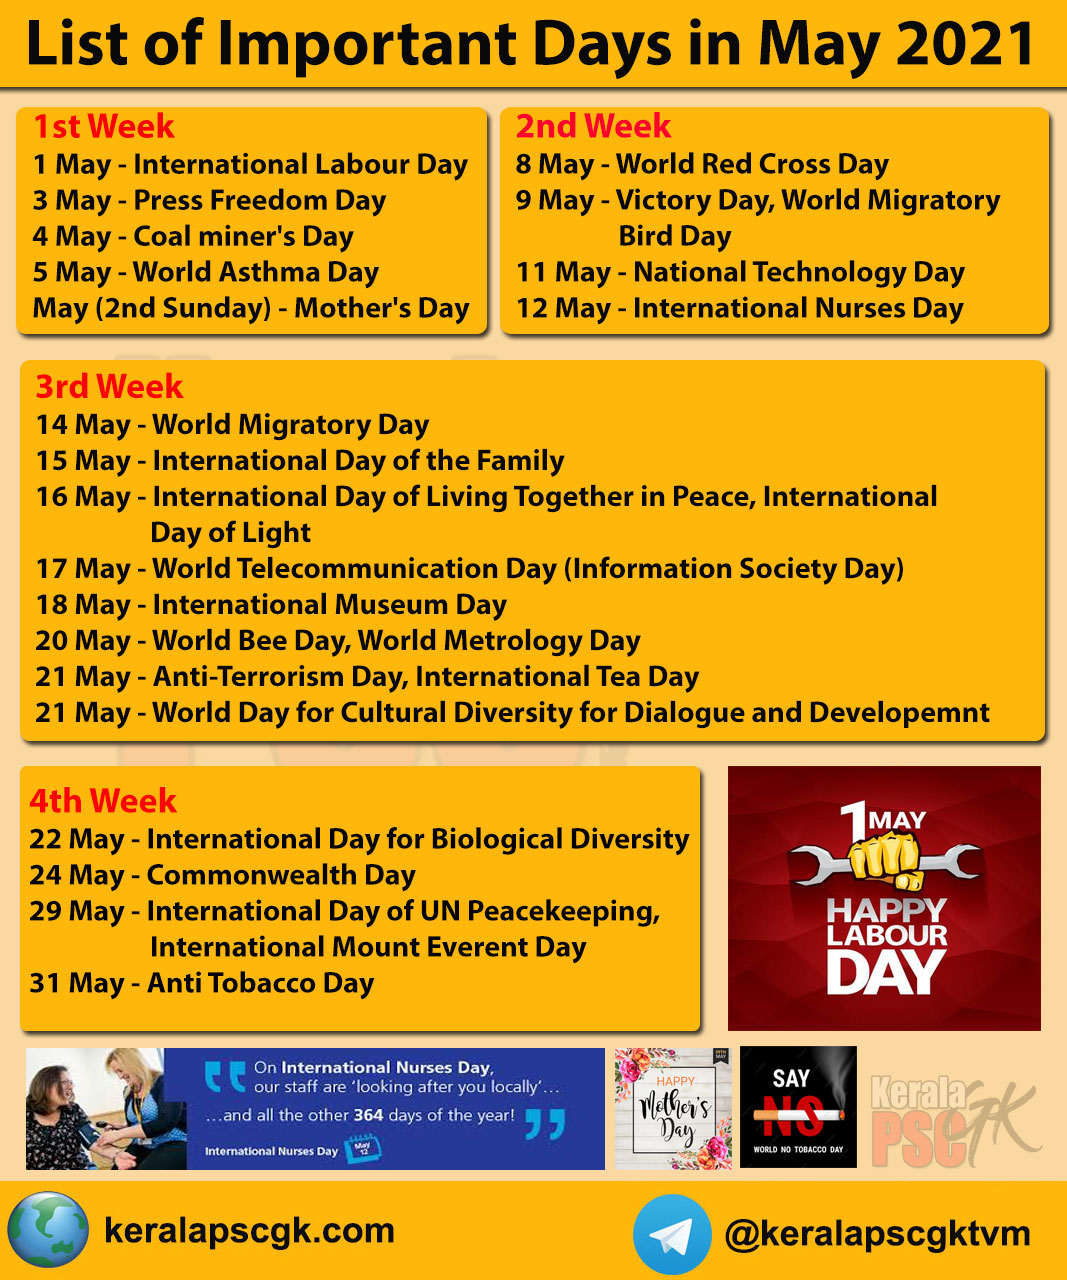 Kerala PSC GK - List of Important Days in May 2021